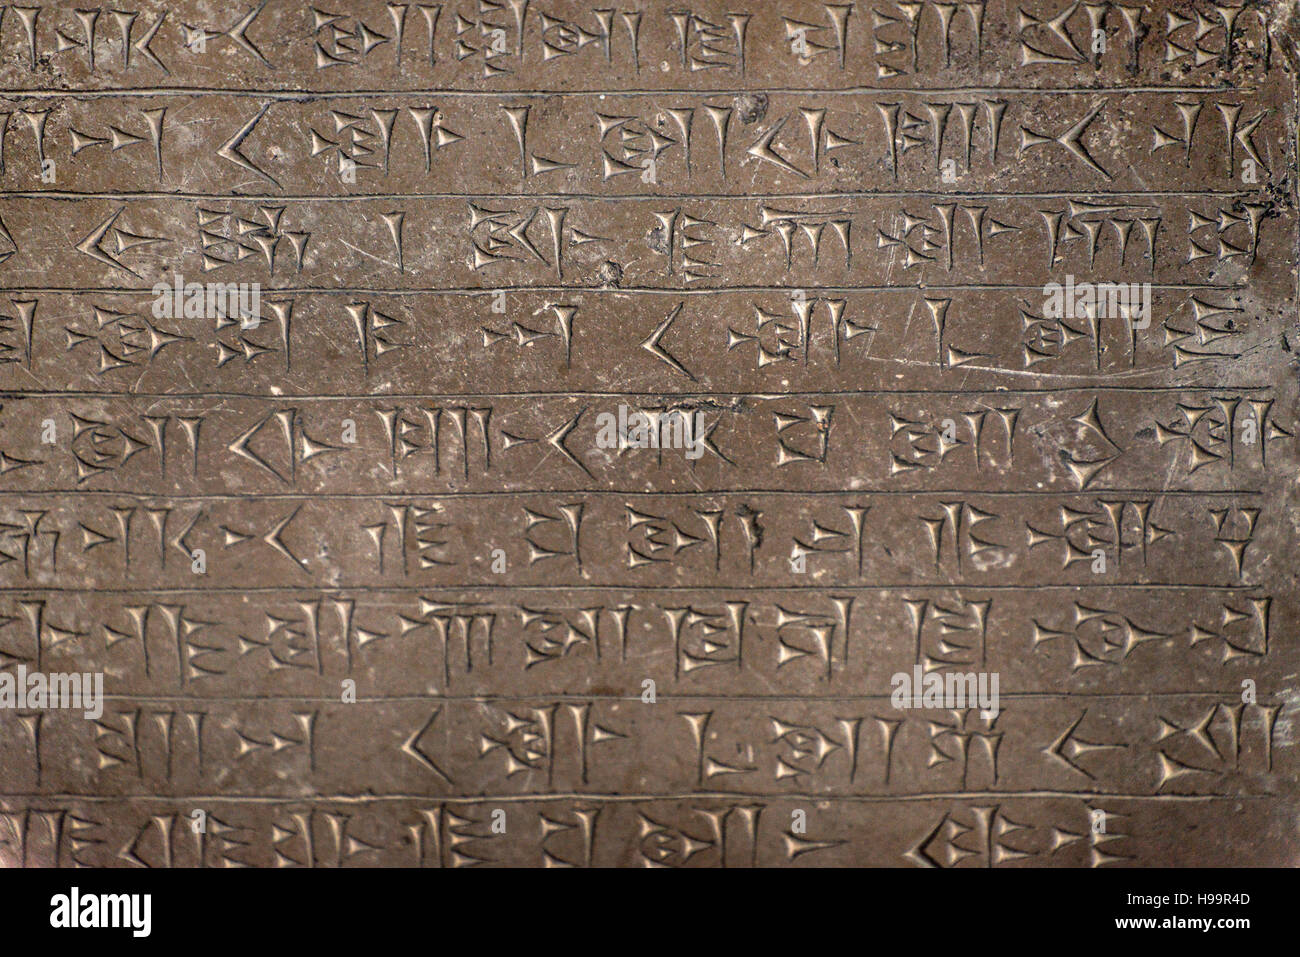 Cuneiform carved scriptures at Archaeological Museum of Tehran, Iran - Stock Image